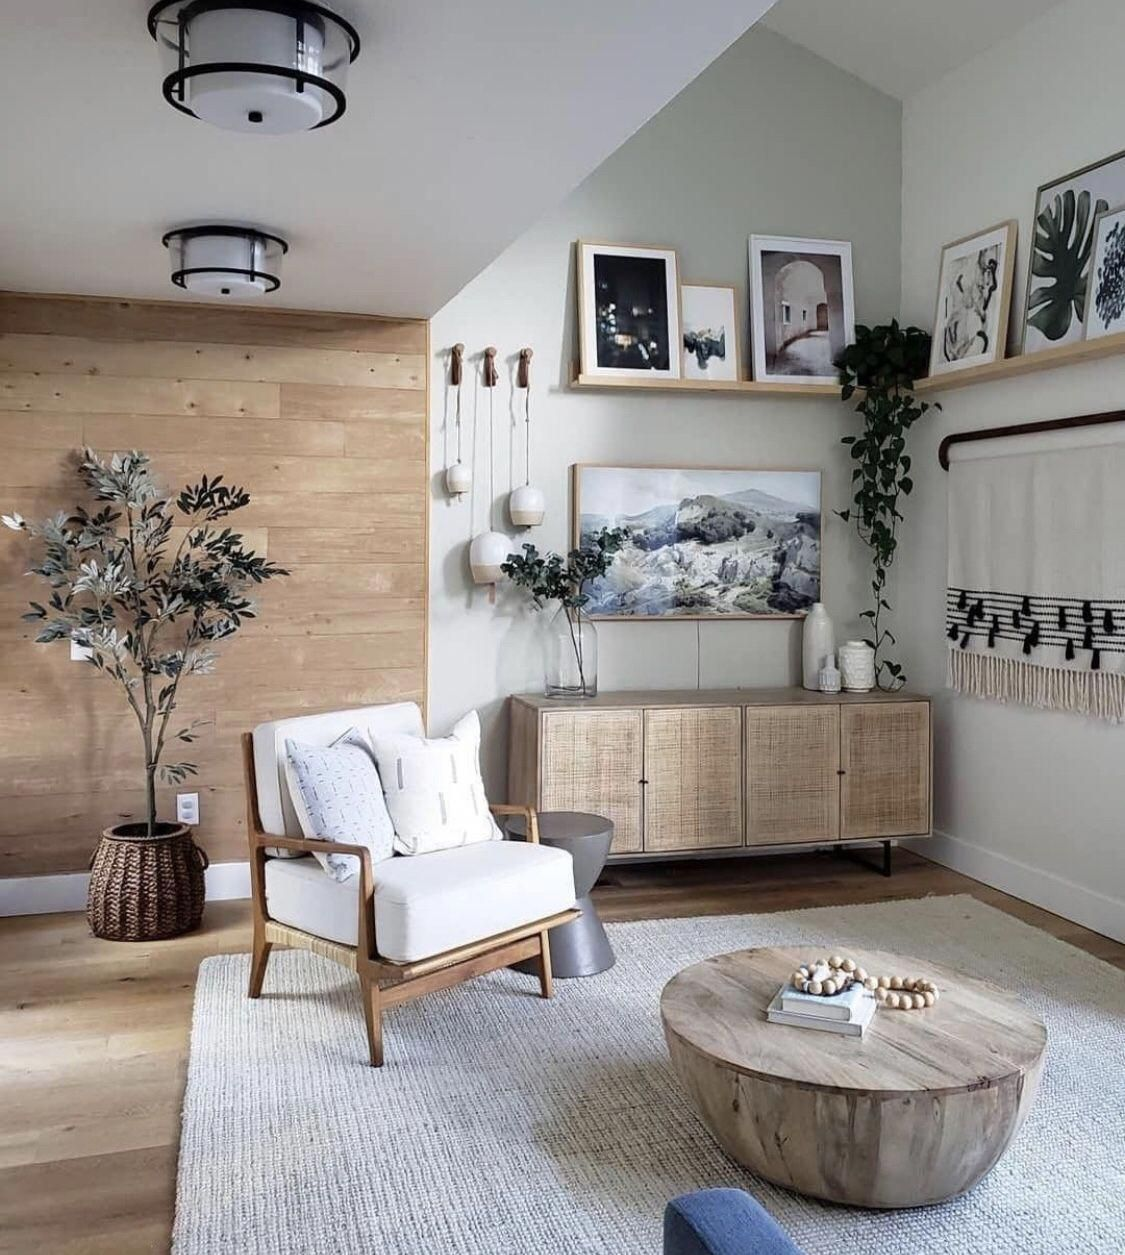 mosslanda picture ledge white 45 in 2020 ikea on living room color inspiration id=76063